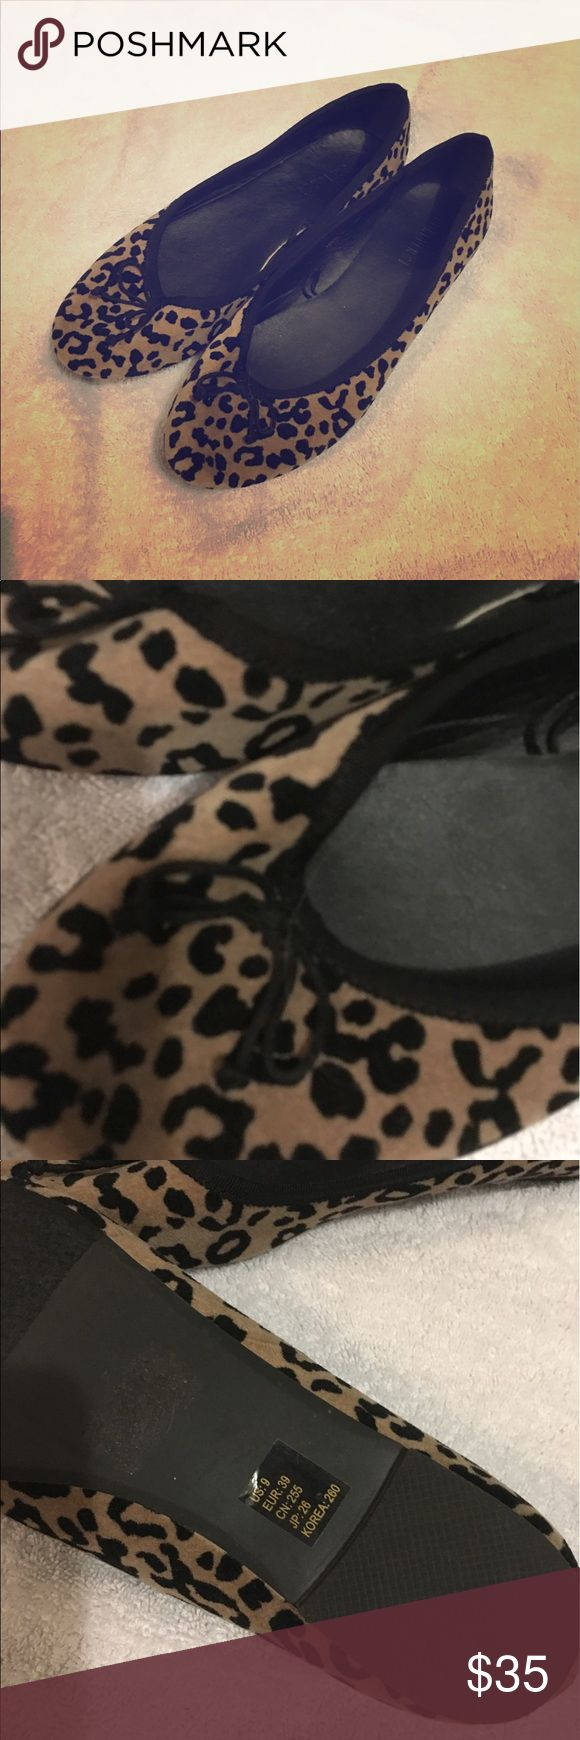 Leopard flats Adorable leopard flats that will add a touch of pizazz to any outfit Shoes Flats & Loafers